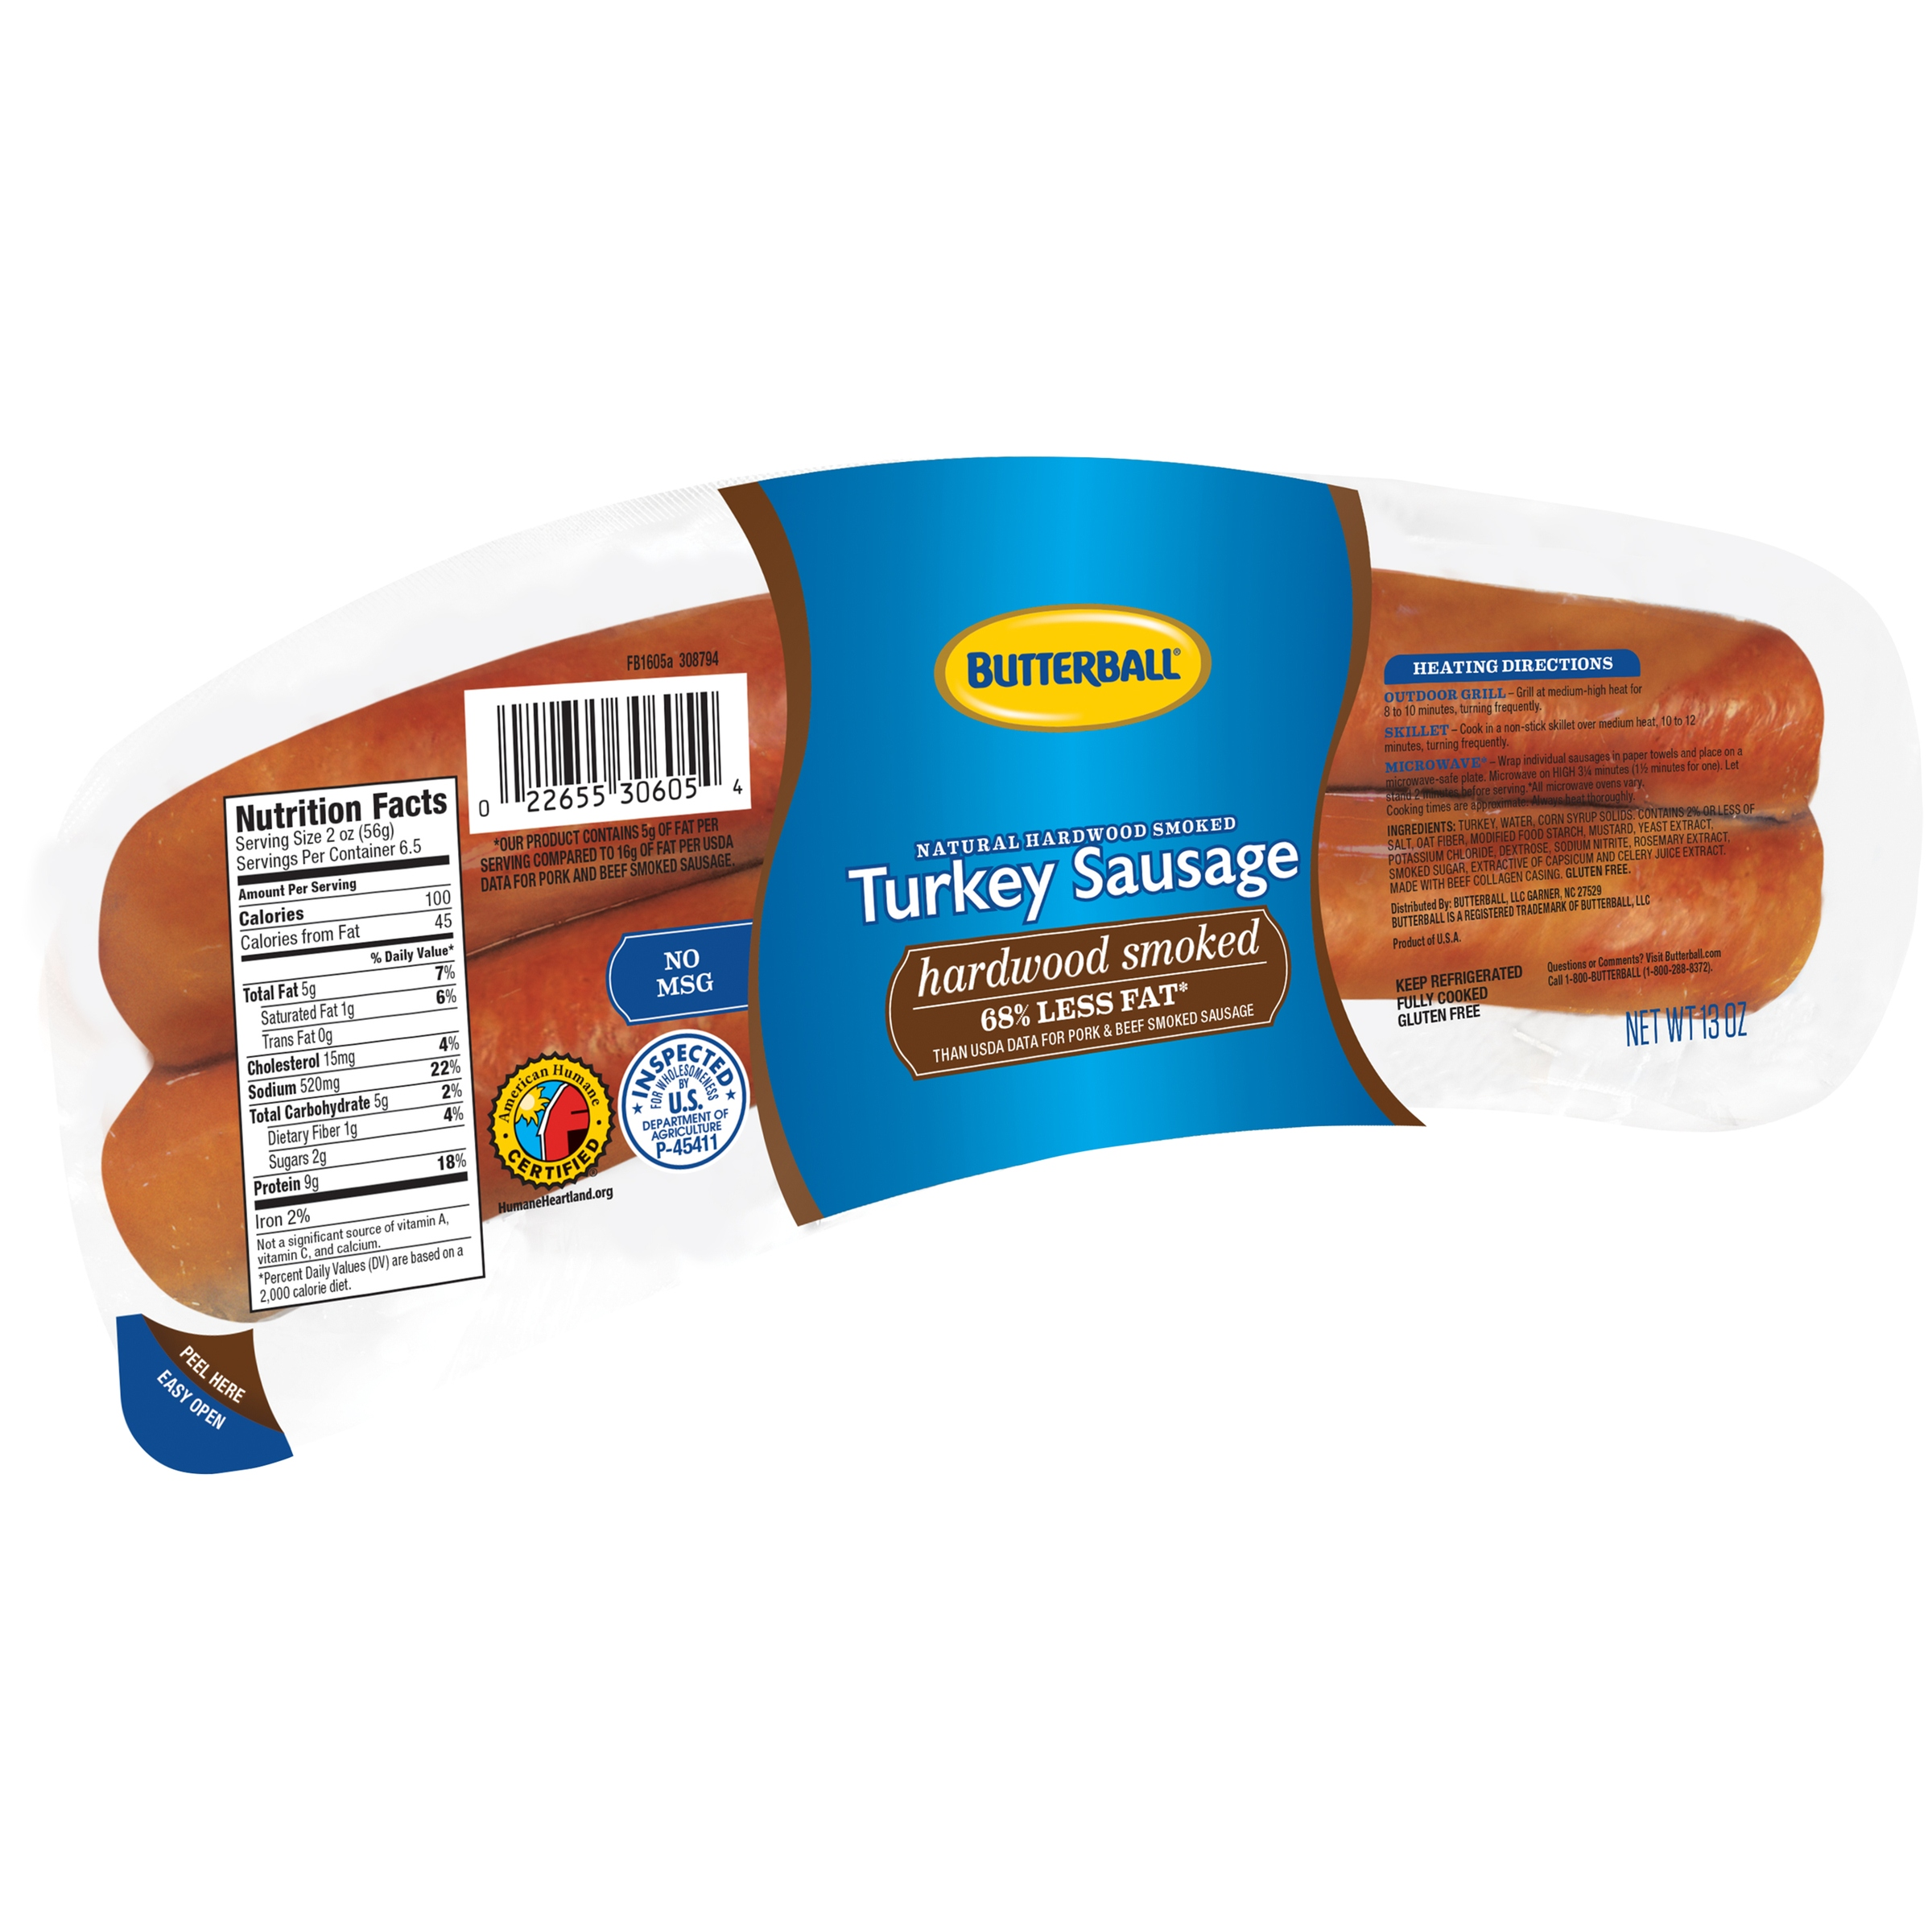 Butterball® Natural Hardwood Smoked Turkey Sausage 13 oz. Pack